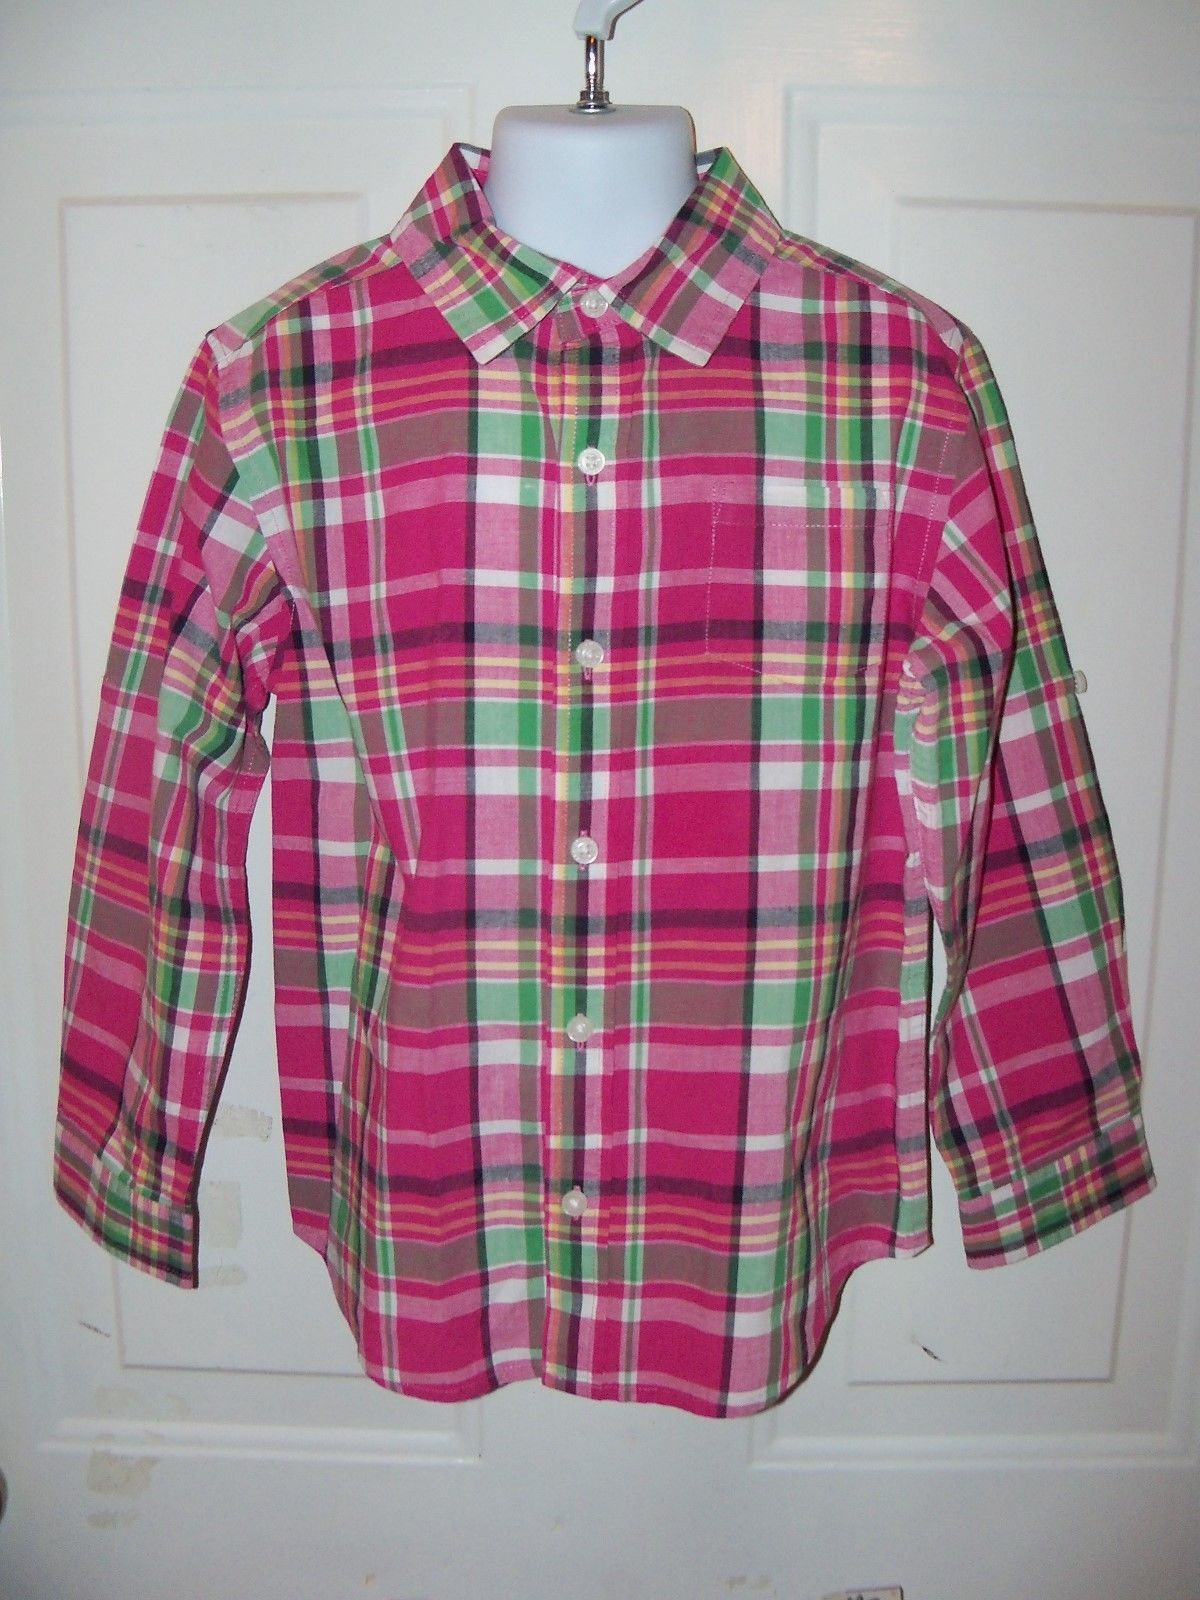 Primary image for JANIE AND JACK PLAID BUTTON DOWN SHIRT SIZE 5 GIRL'S NWOT